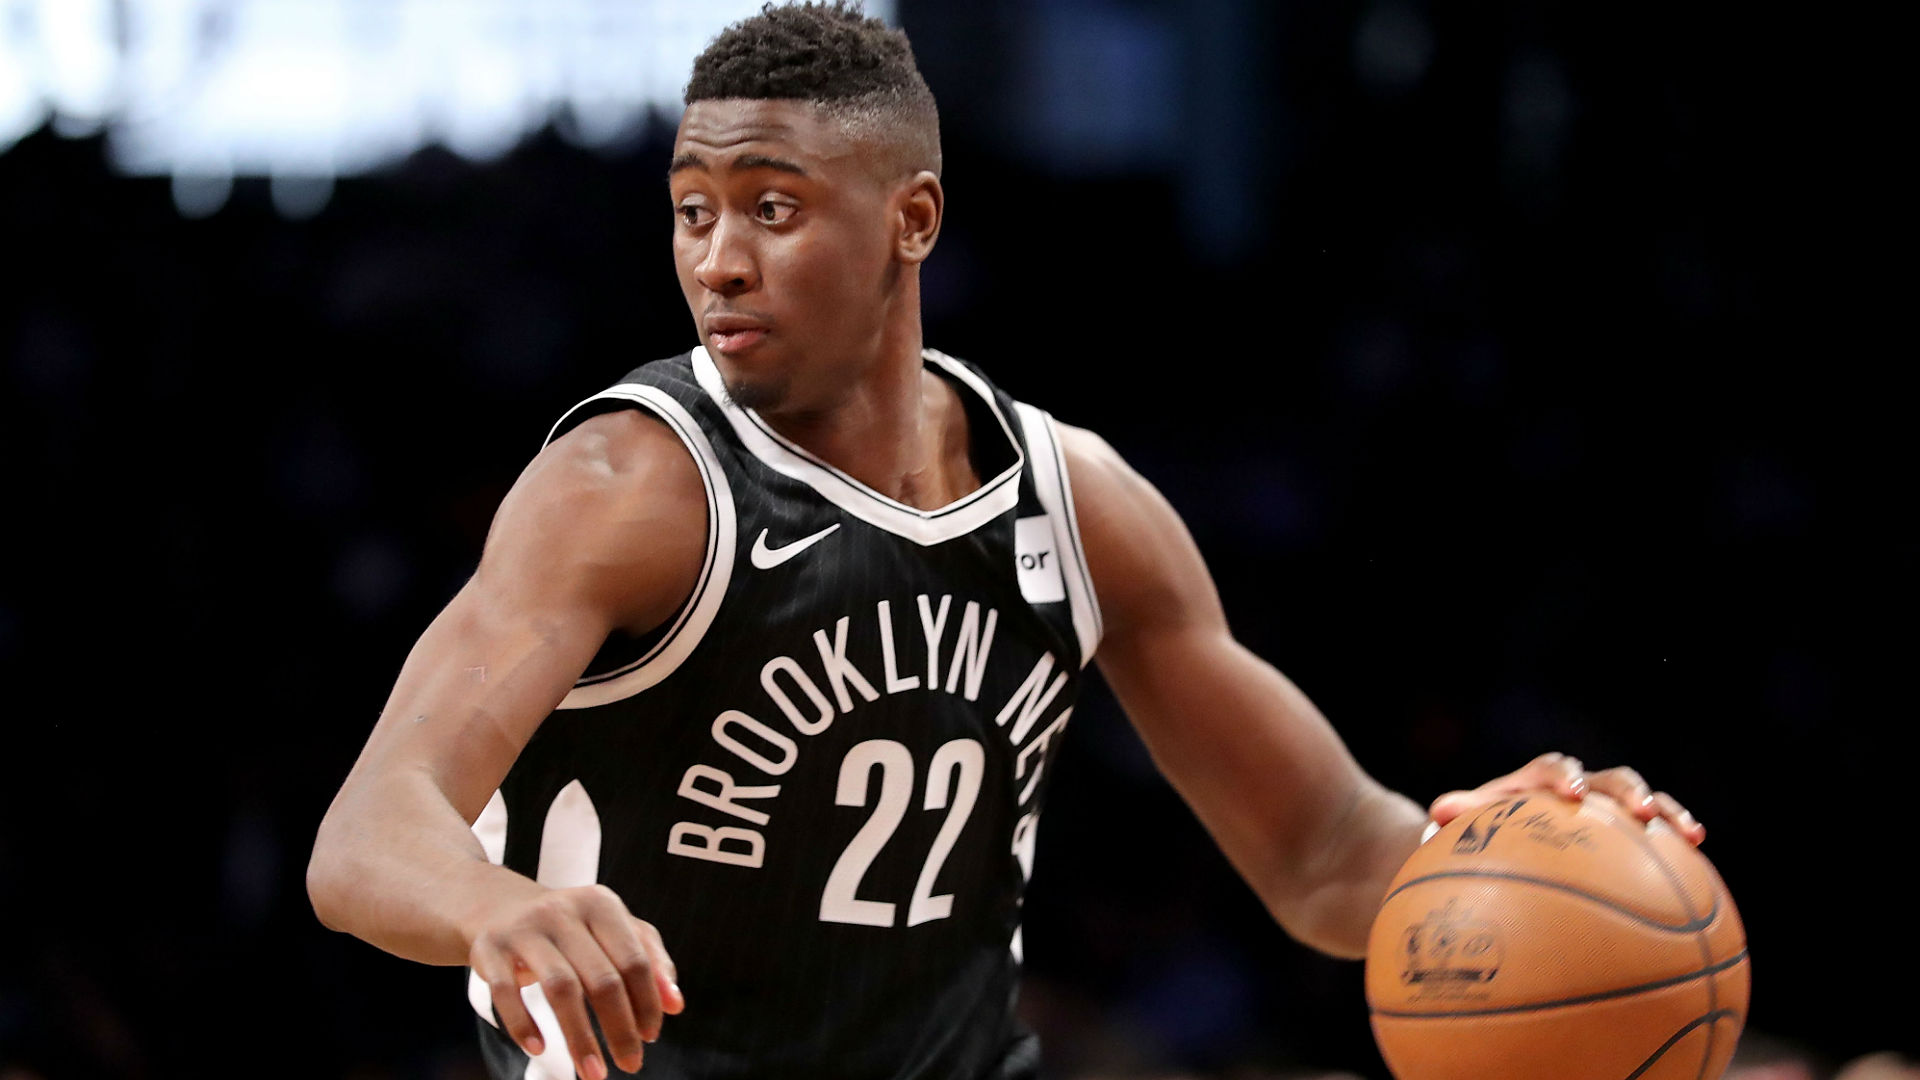 Brooklyn Nets' Rising Star Caris LeVert Suffers Gruesome Leg Injury